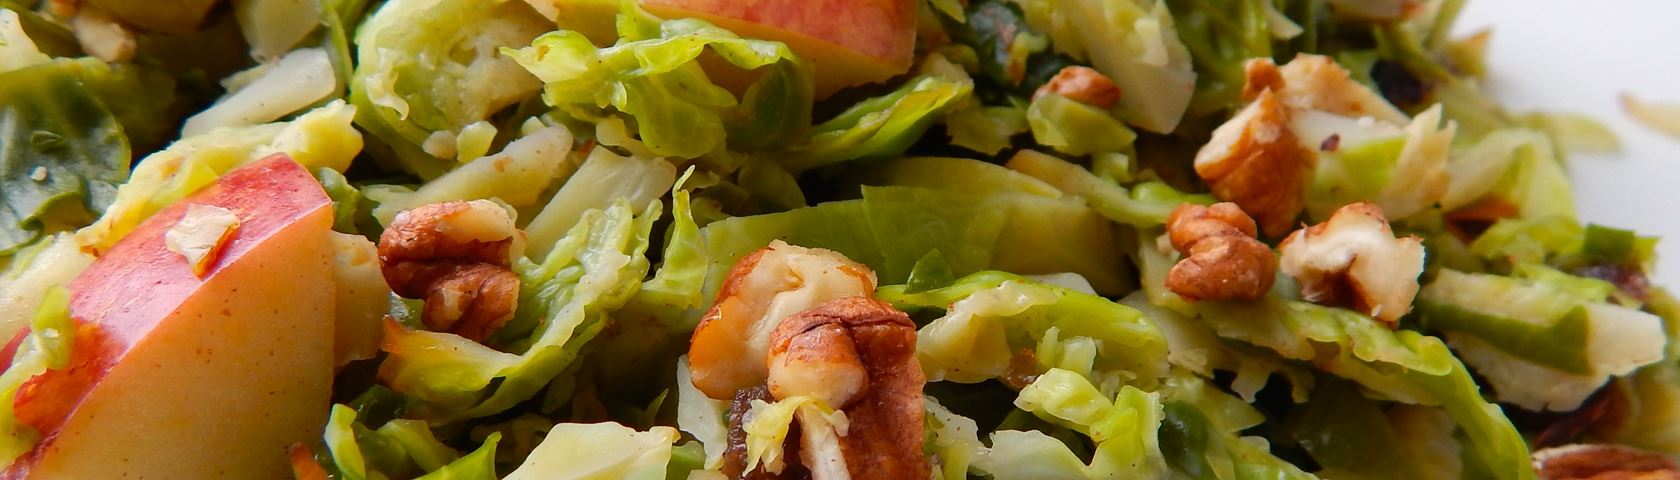 Brussels Sprouts with Apples and Pecans